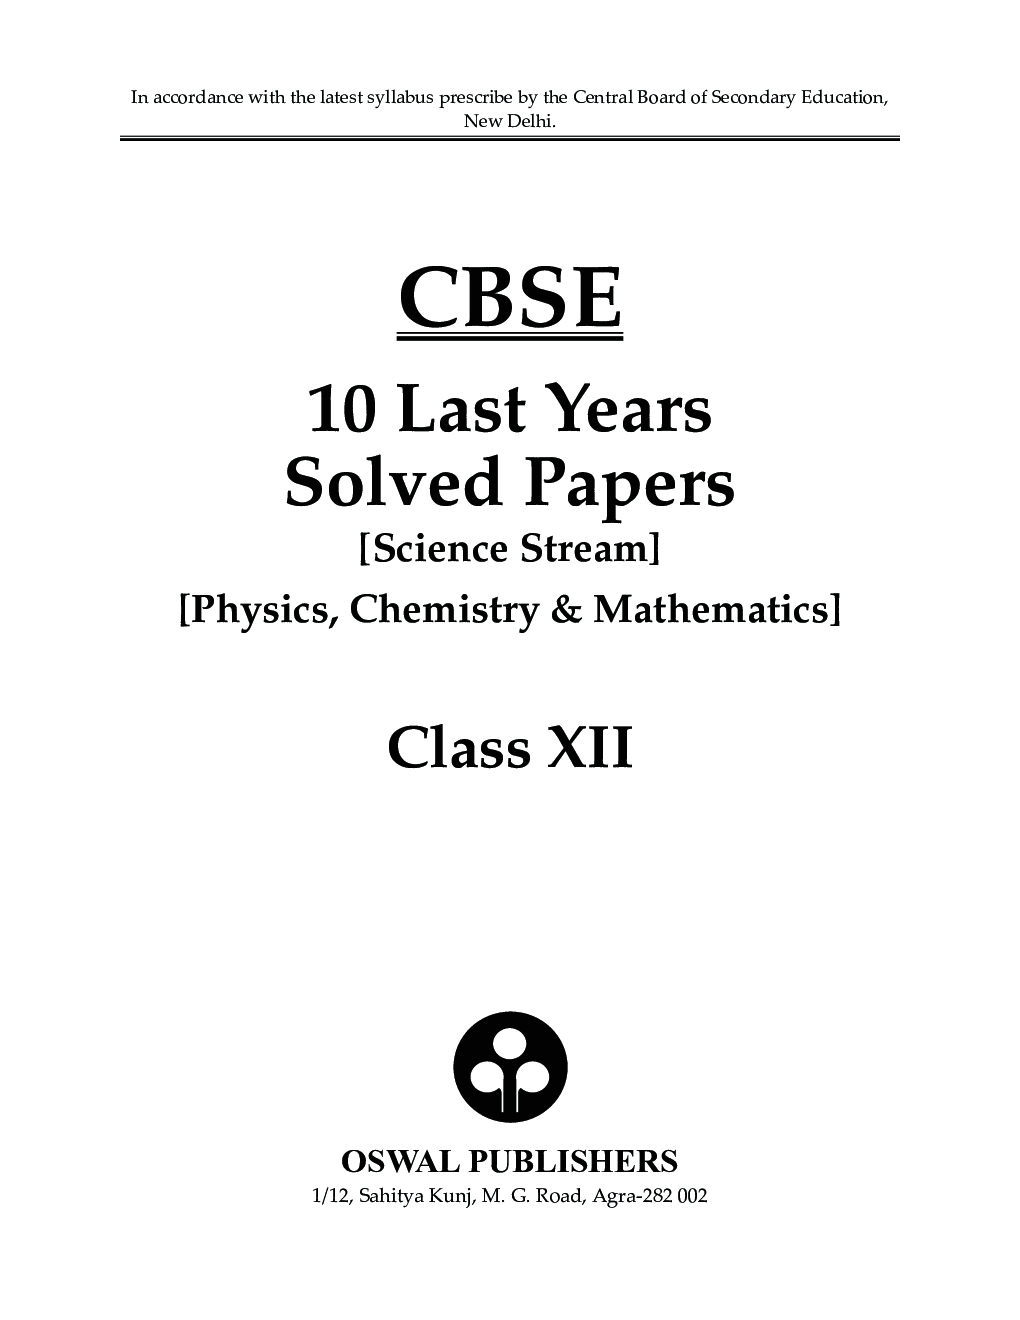 Download Oswal CBSE Class 12th Science Stream Last 10